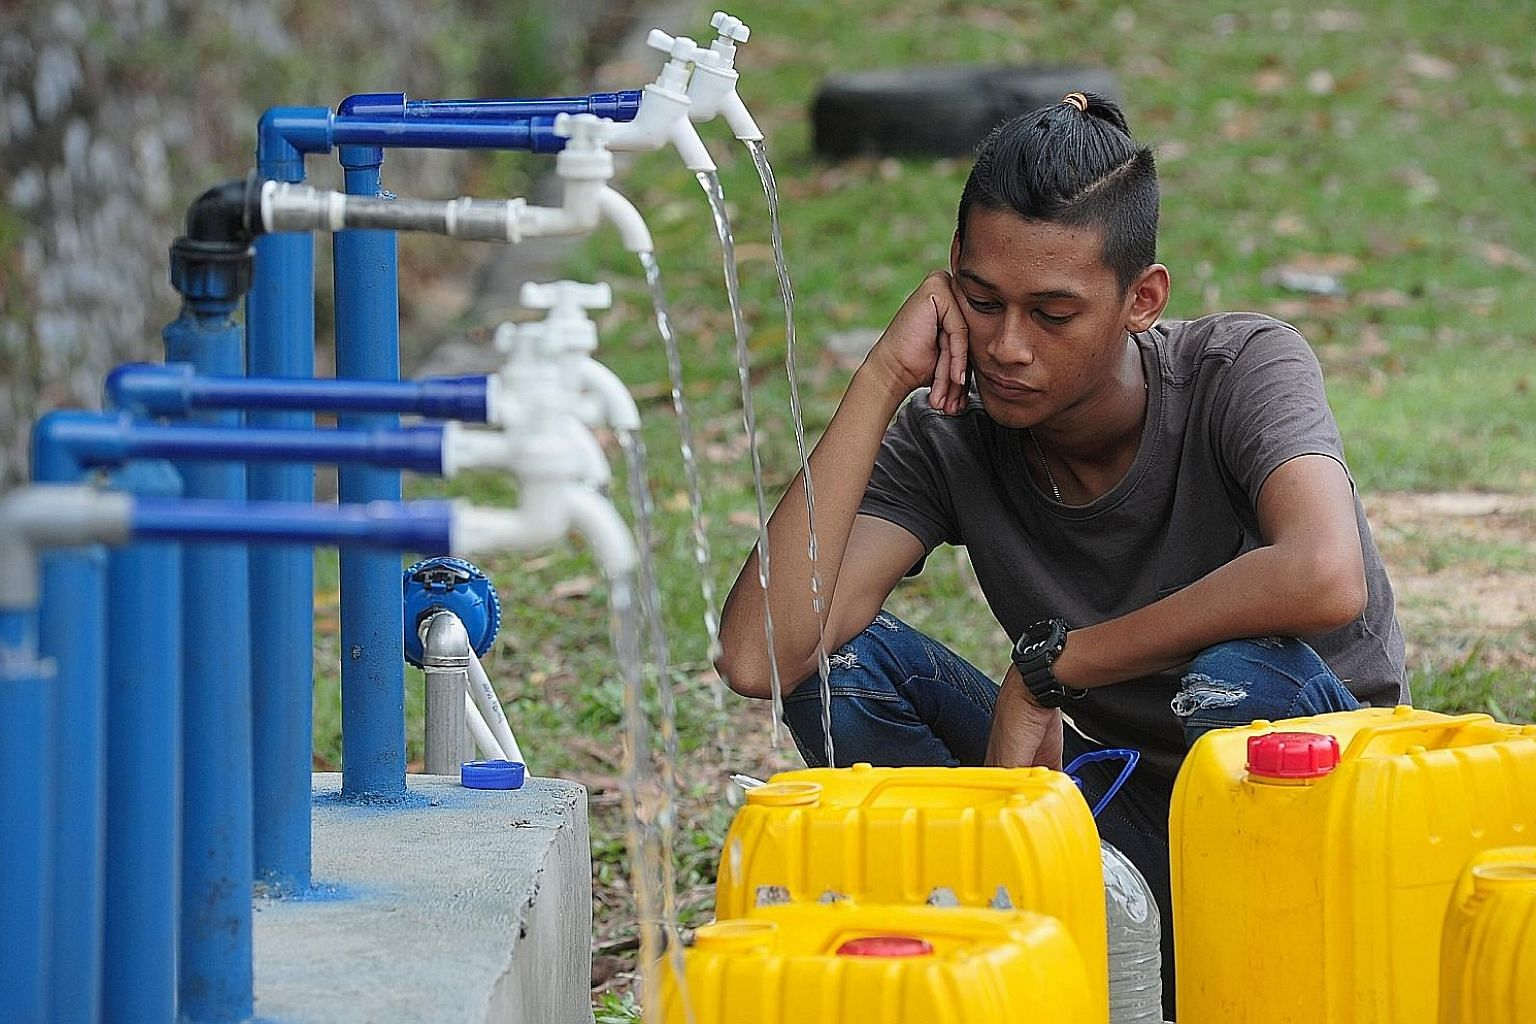 A man filling up his containers with water from pipes yesterday, after supply was cut off in Selangor. Millions of consumers like him were affected by the second water outage in days. PHOTO: BERNAMA